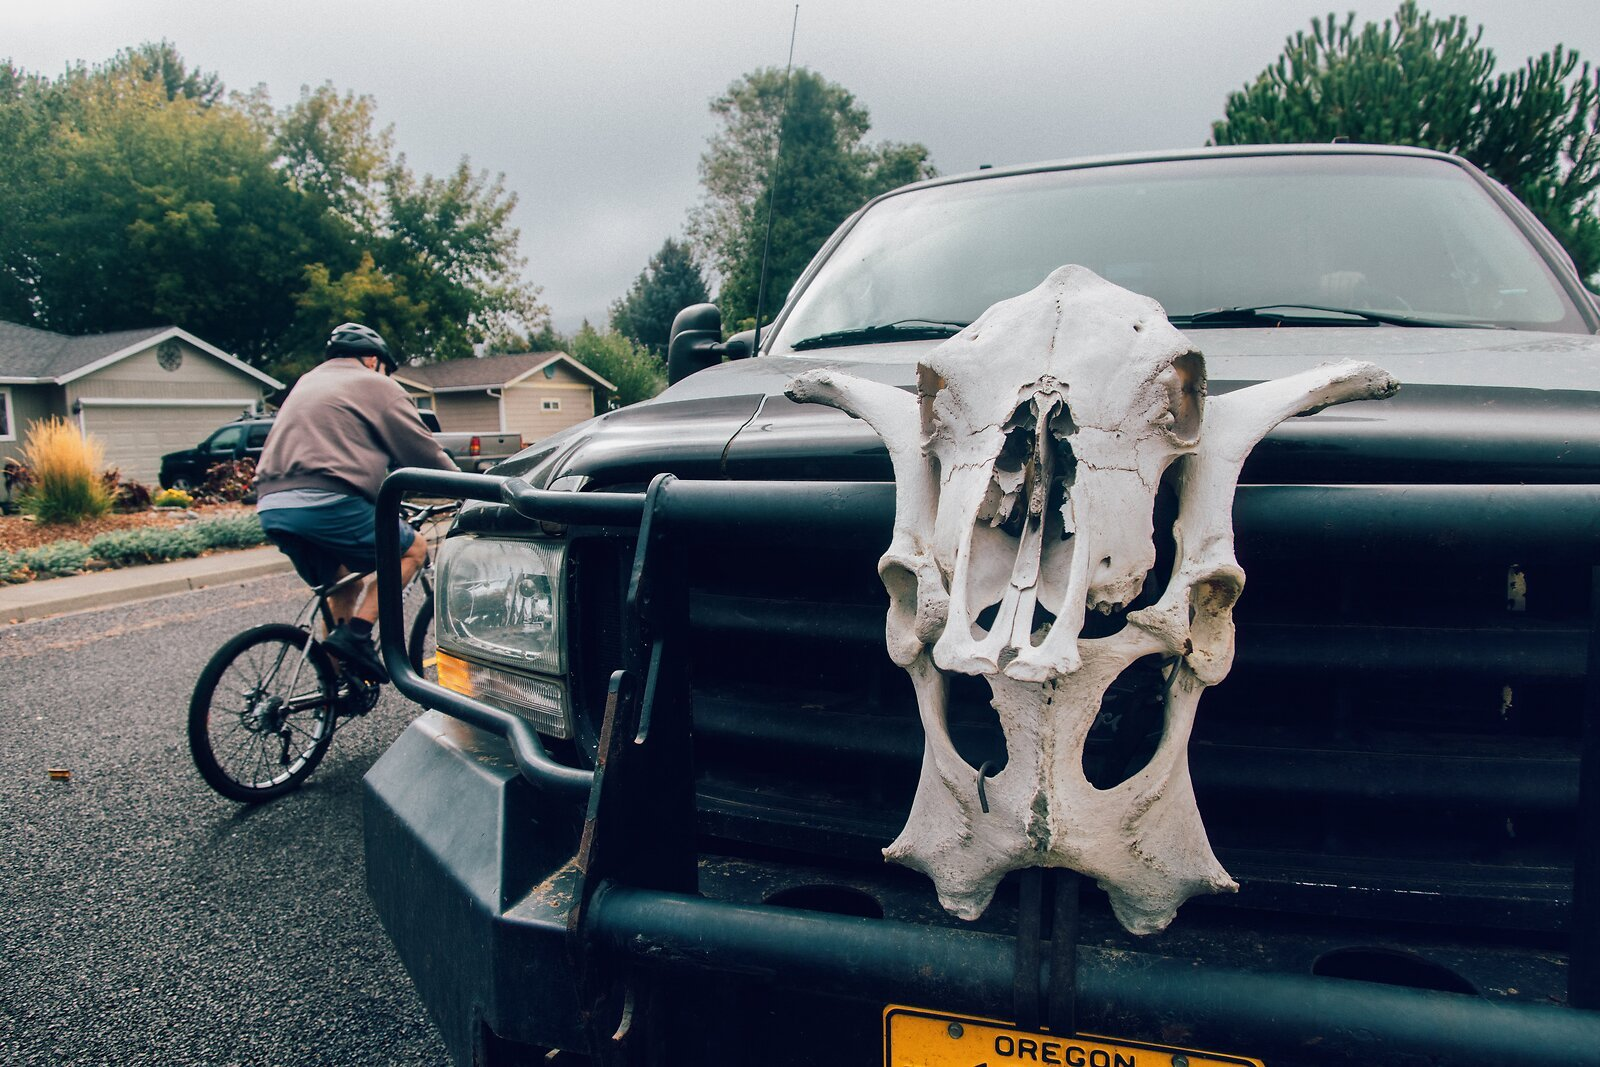 G1Xiii_Sept26_Truck_with_Cow_Skull.jpg